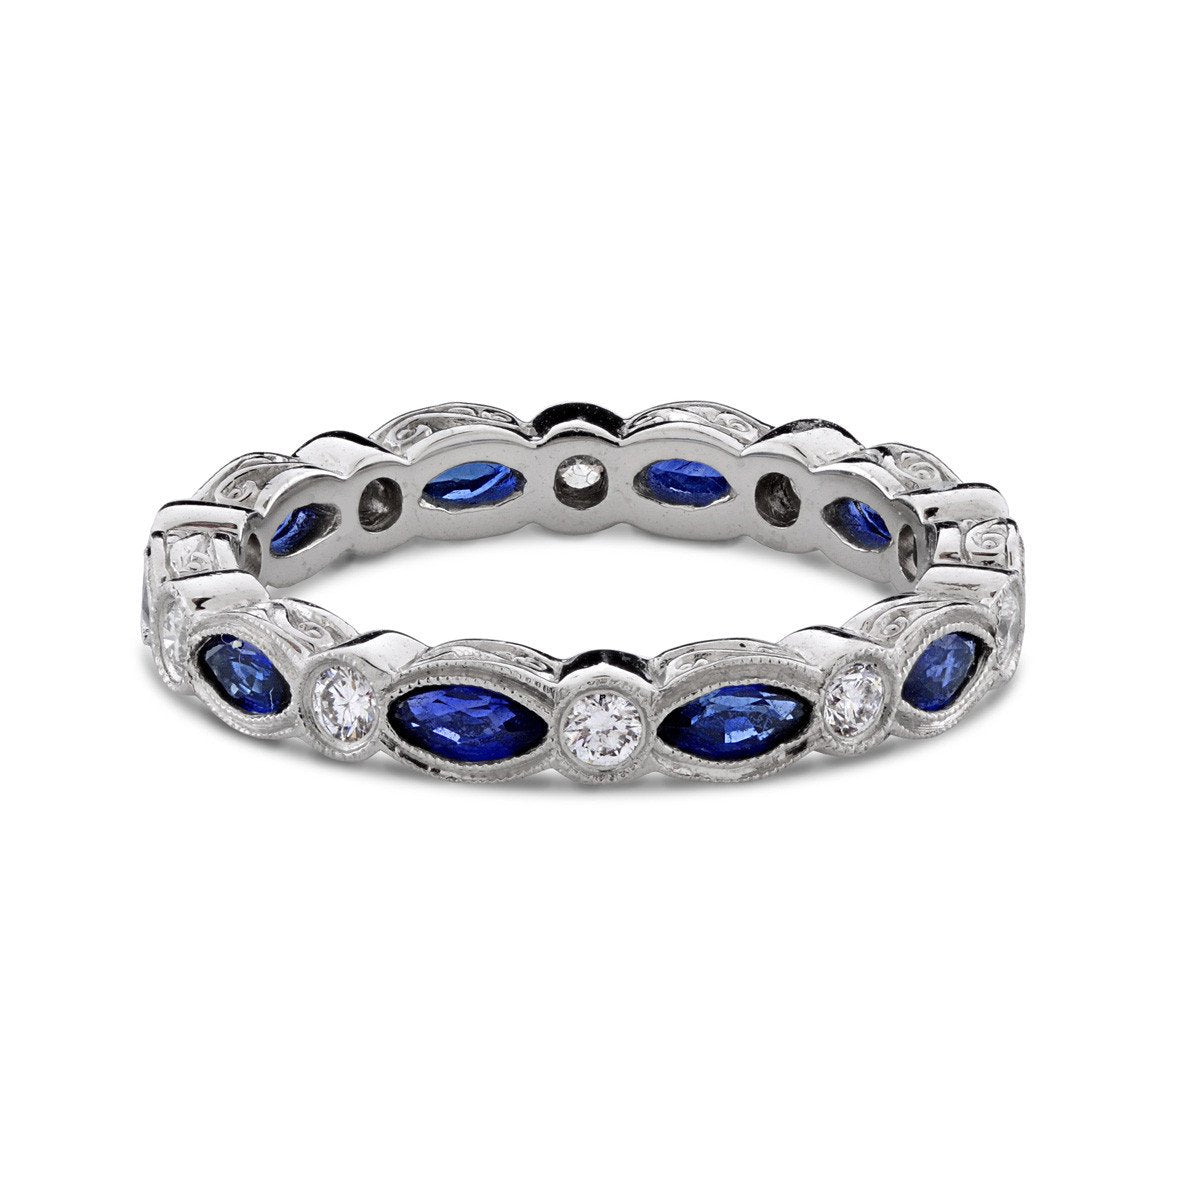 cut diamond fashion half products round bands graduated cocktail cubic band eternity plated anniversary sapphire ring blue peninah zirconia cz and silver clear hematite